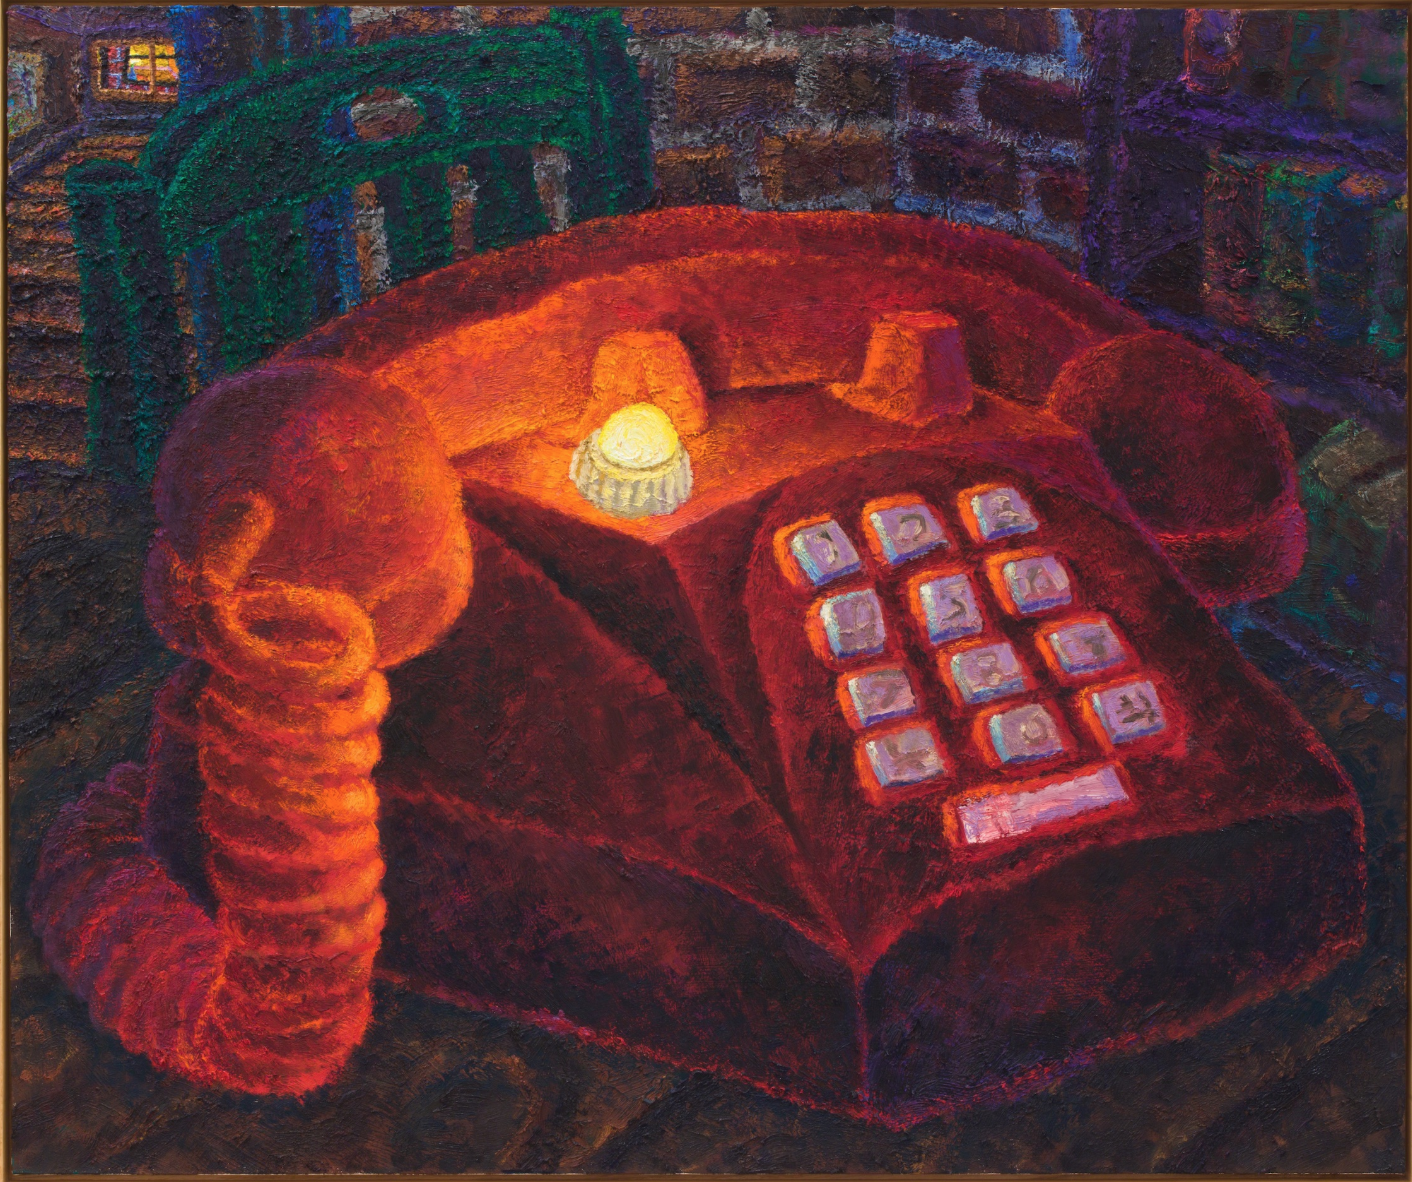 A close-up painting of and enlarged red telephone.